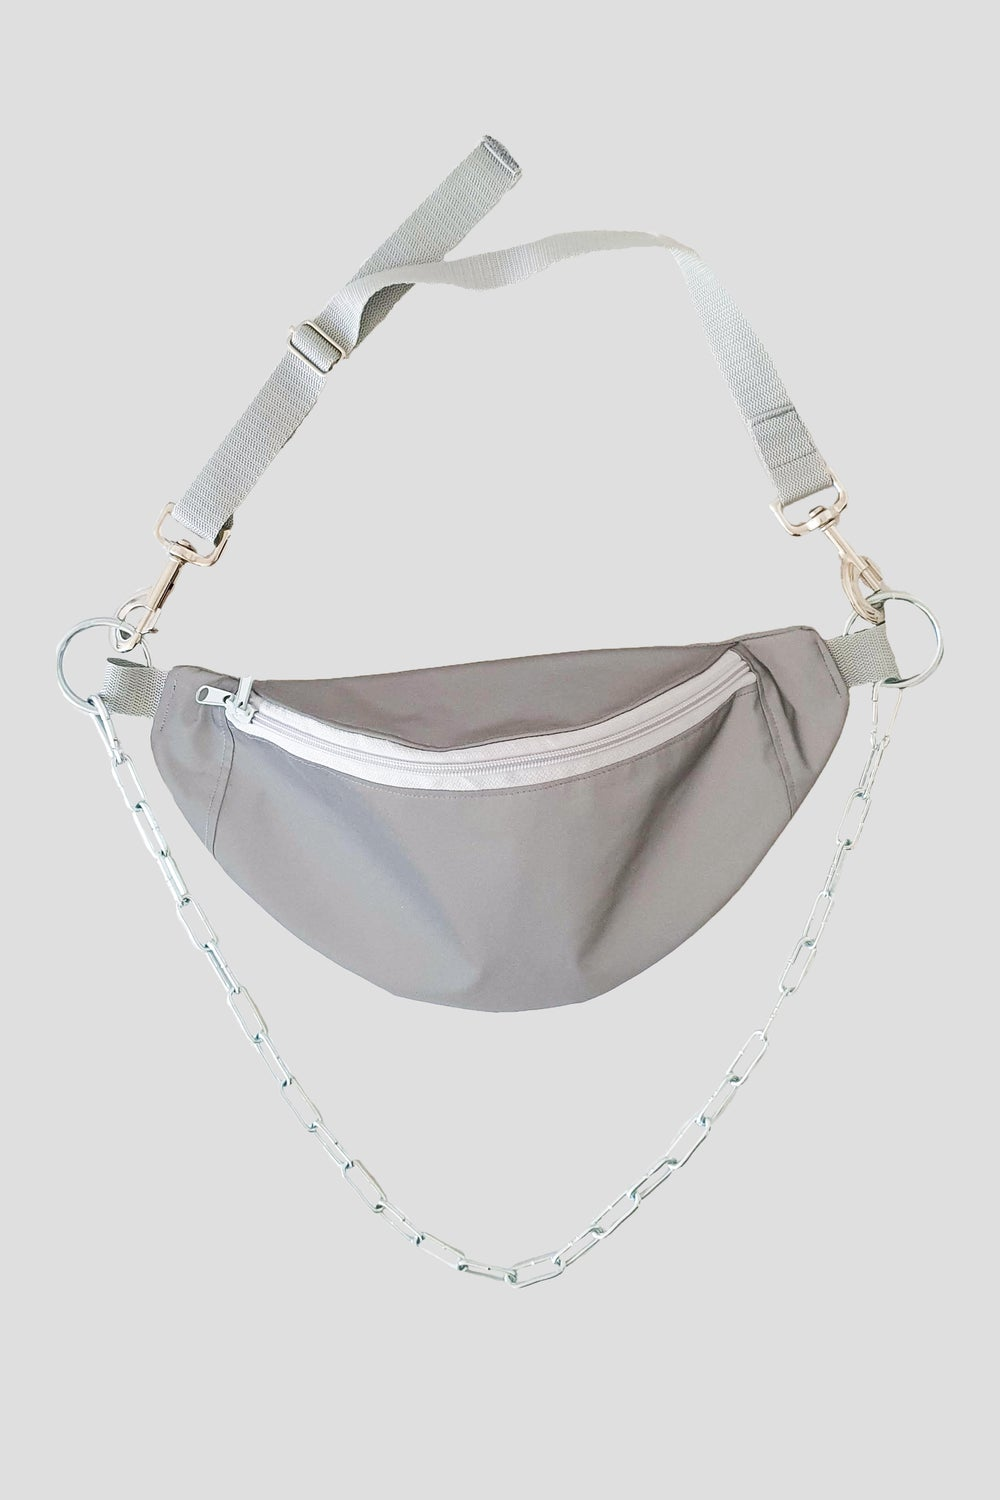 Image of Reflective Fannypack